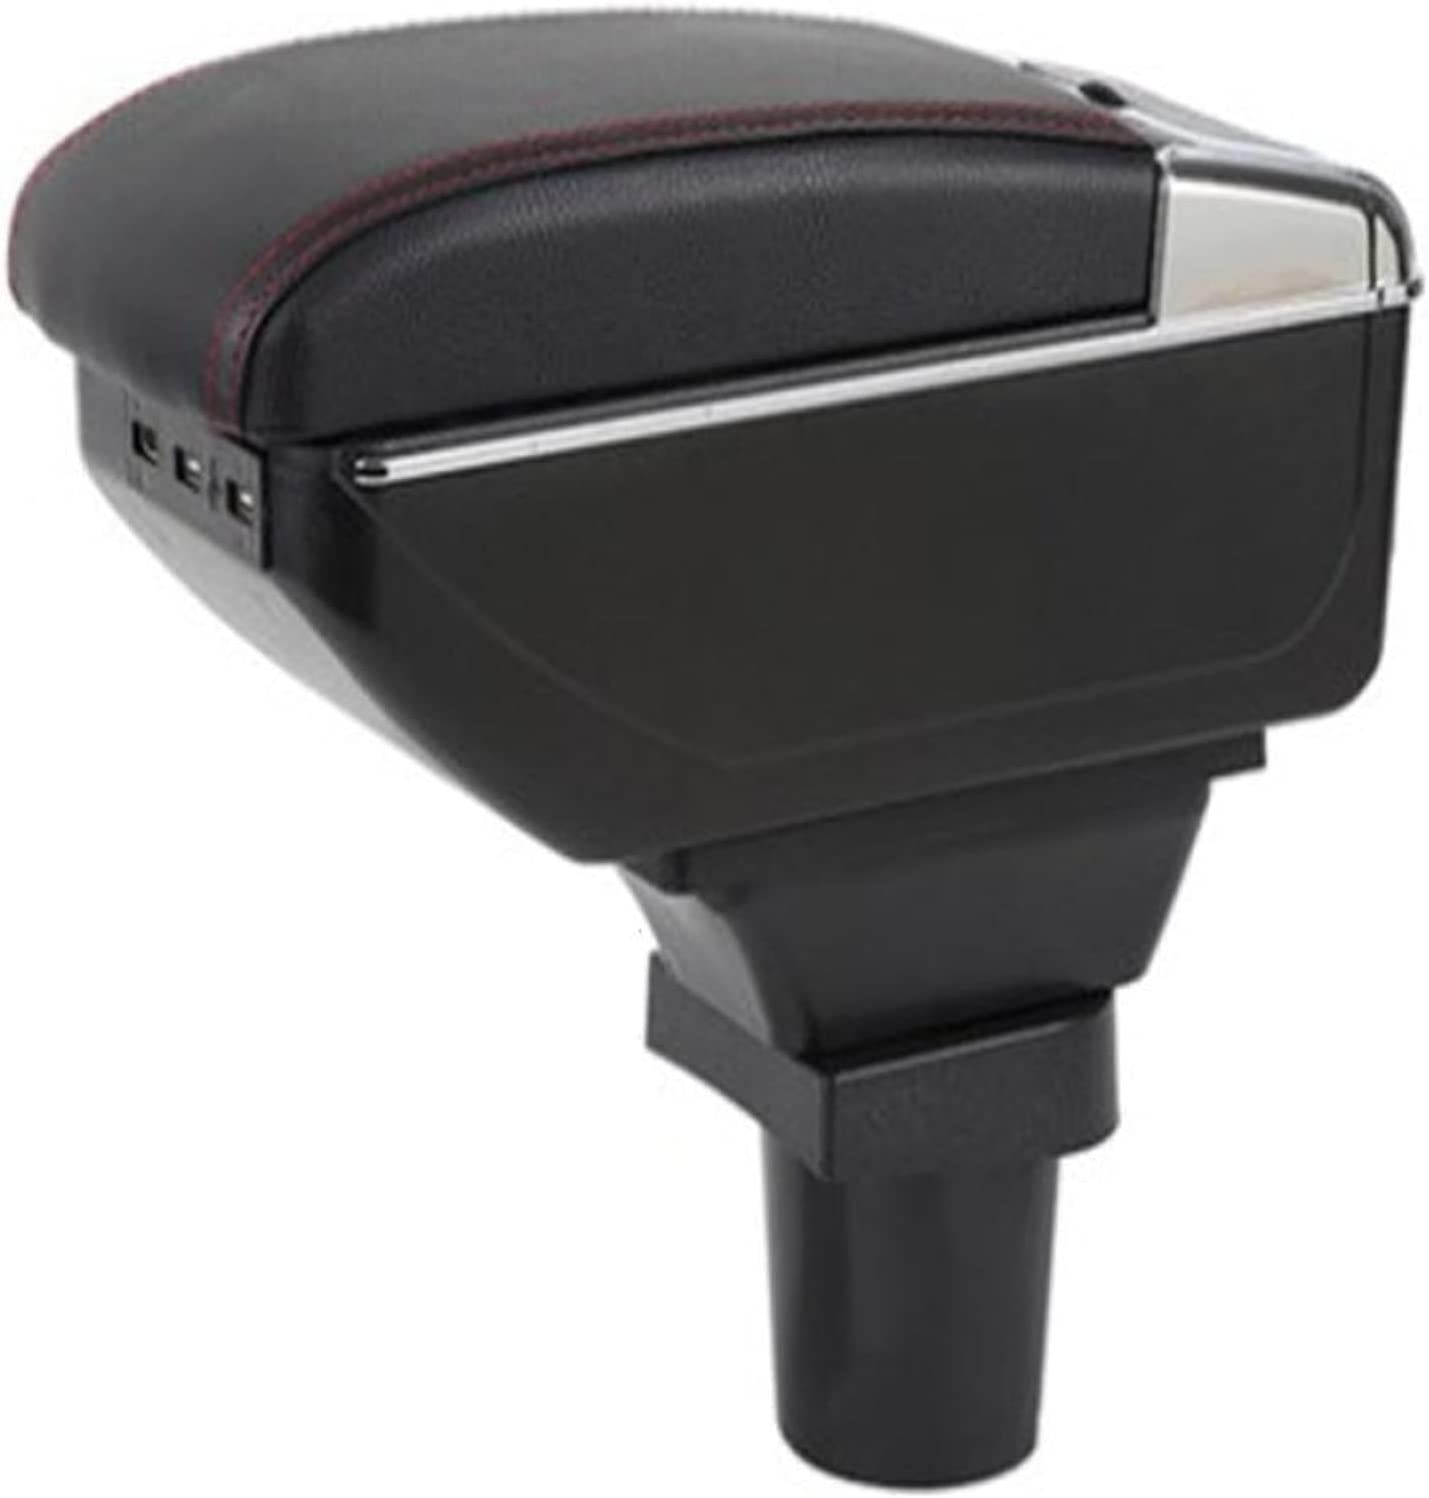 Limited price sale Sobneqce for Mitsubishi Colt Super beauty product restock quality top! Armrest D Charging Heighten USB Box